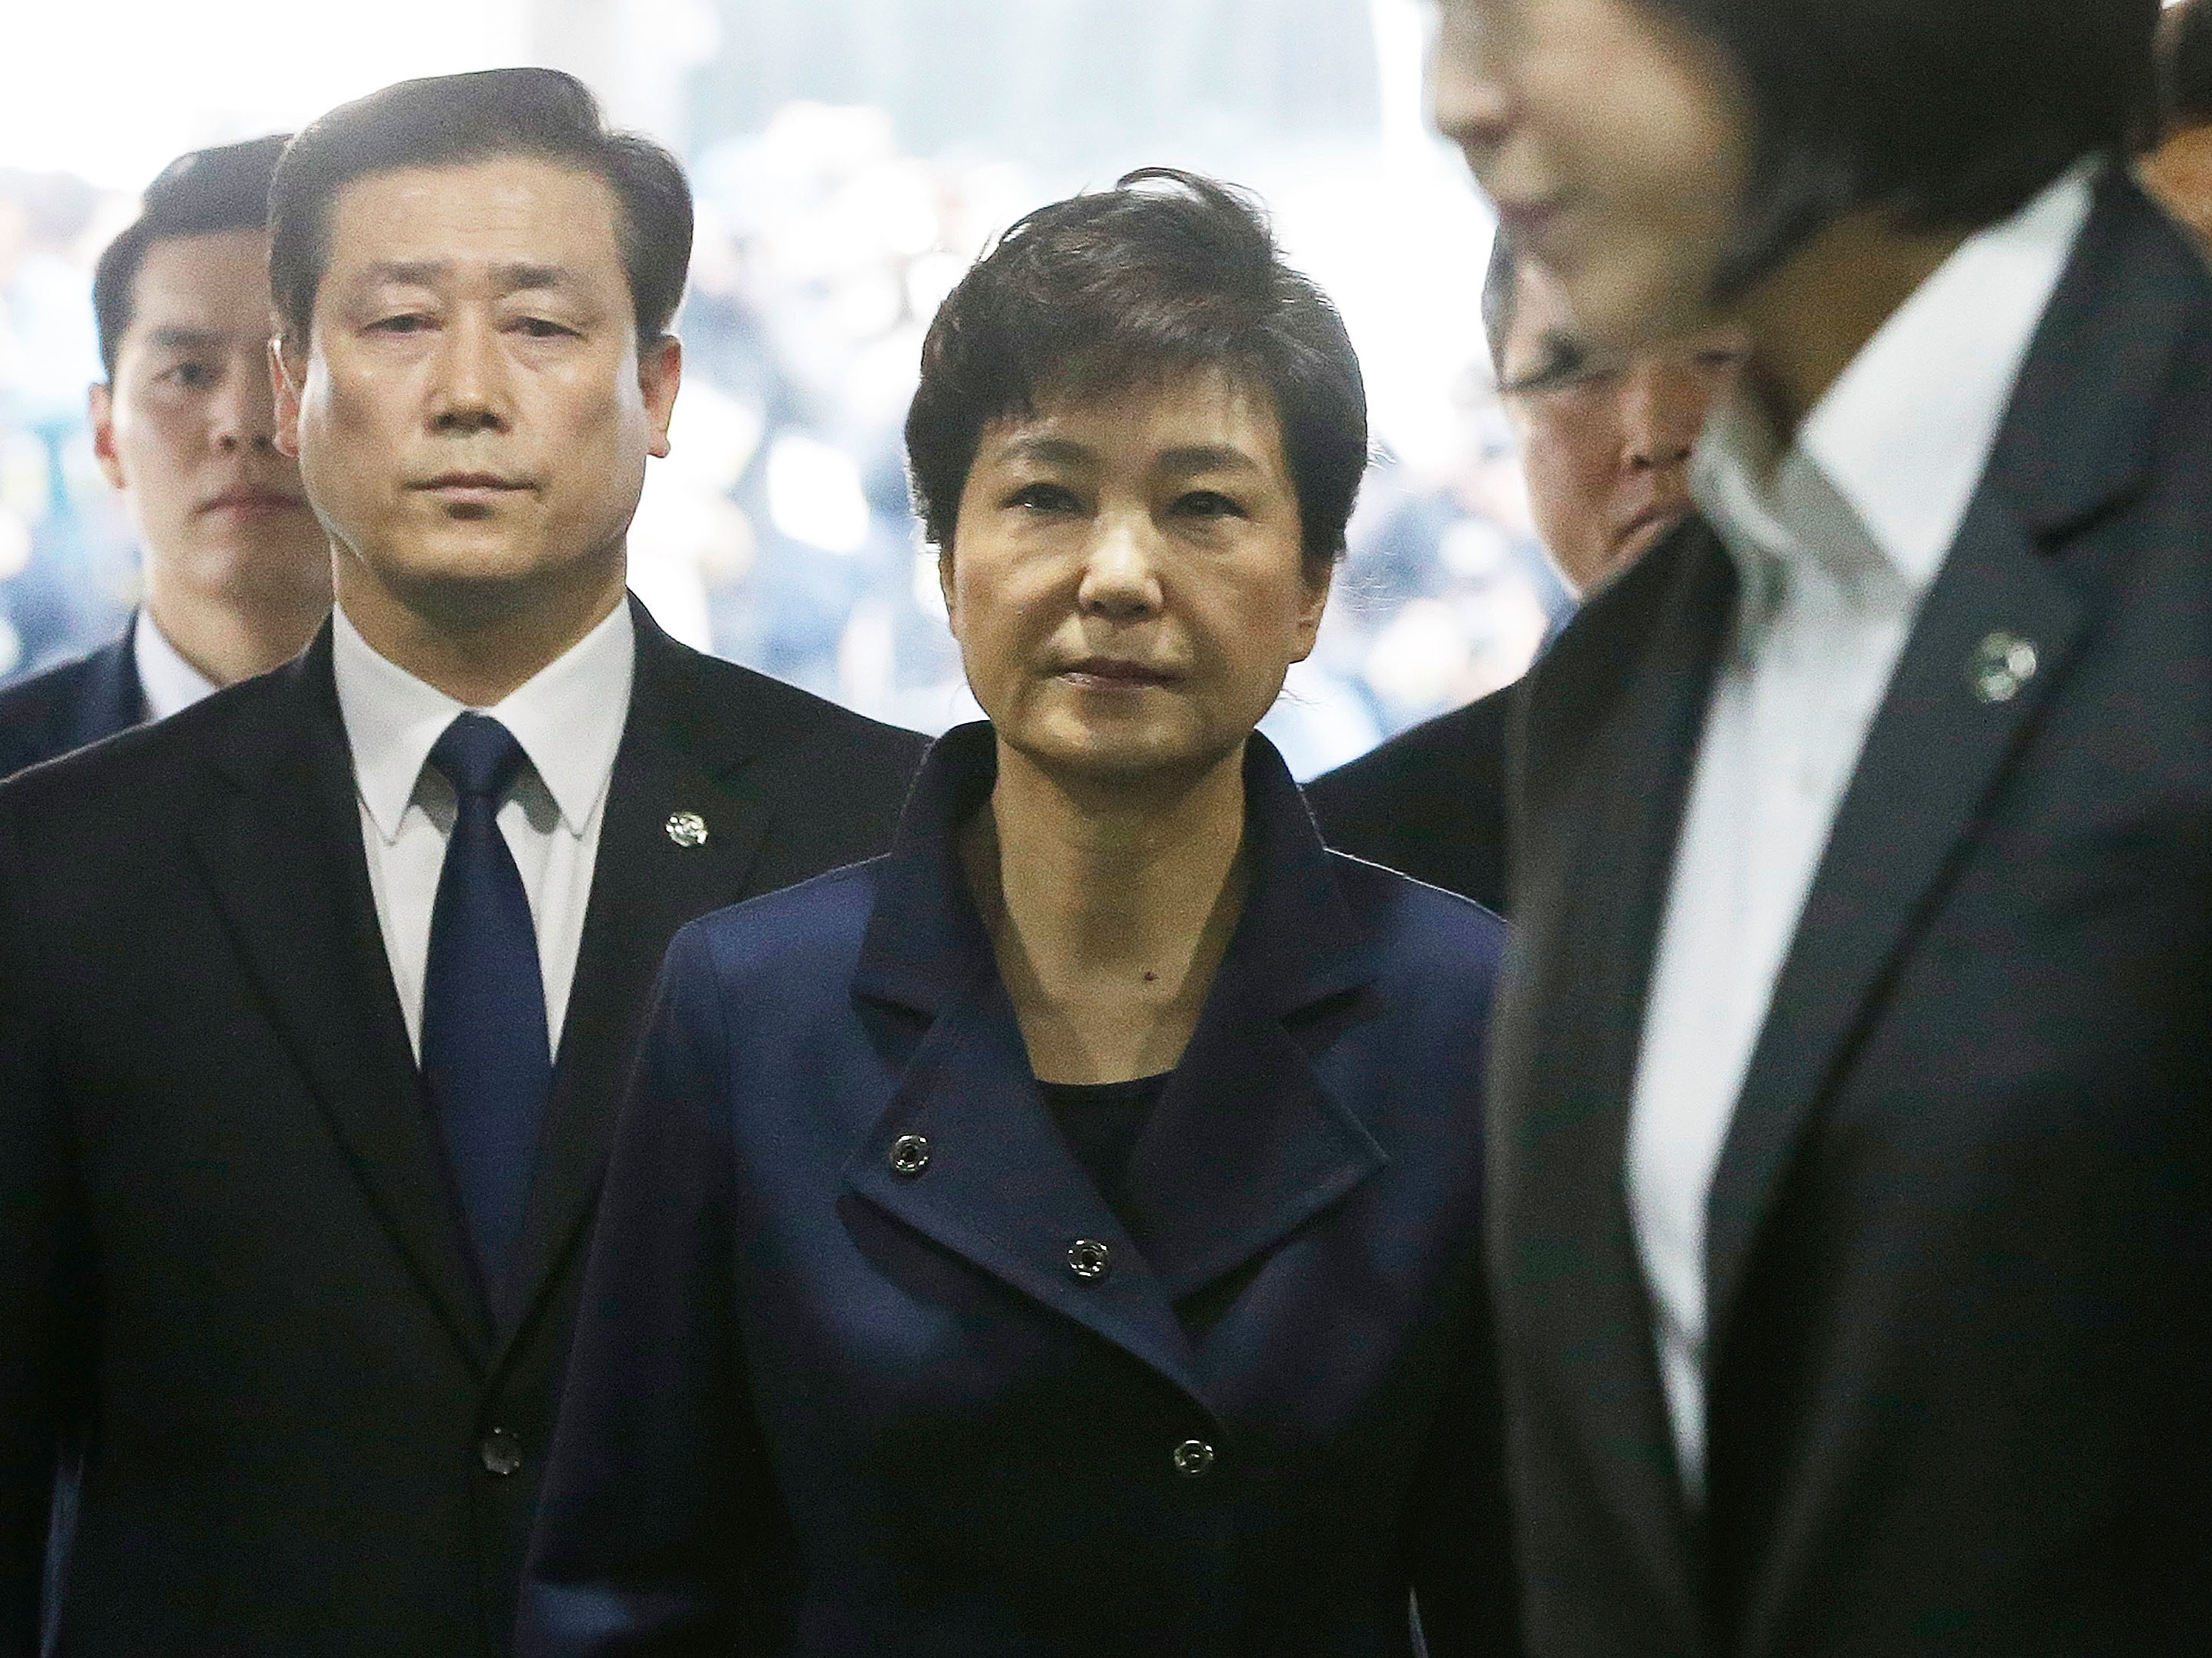 Ousted South Korean Leader Park Geun-hye Arrested On Corruption Charges